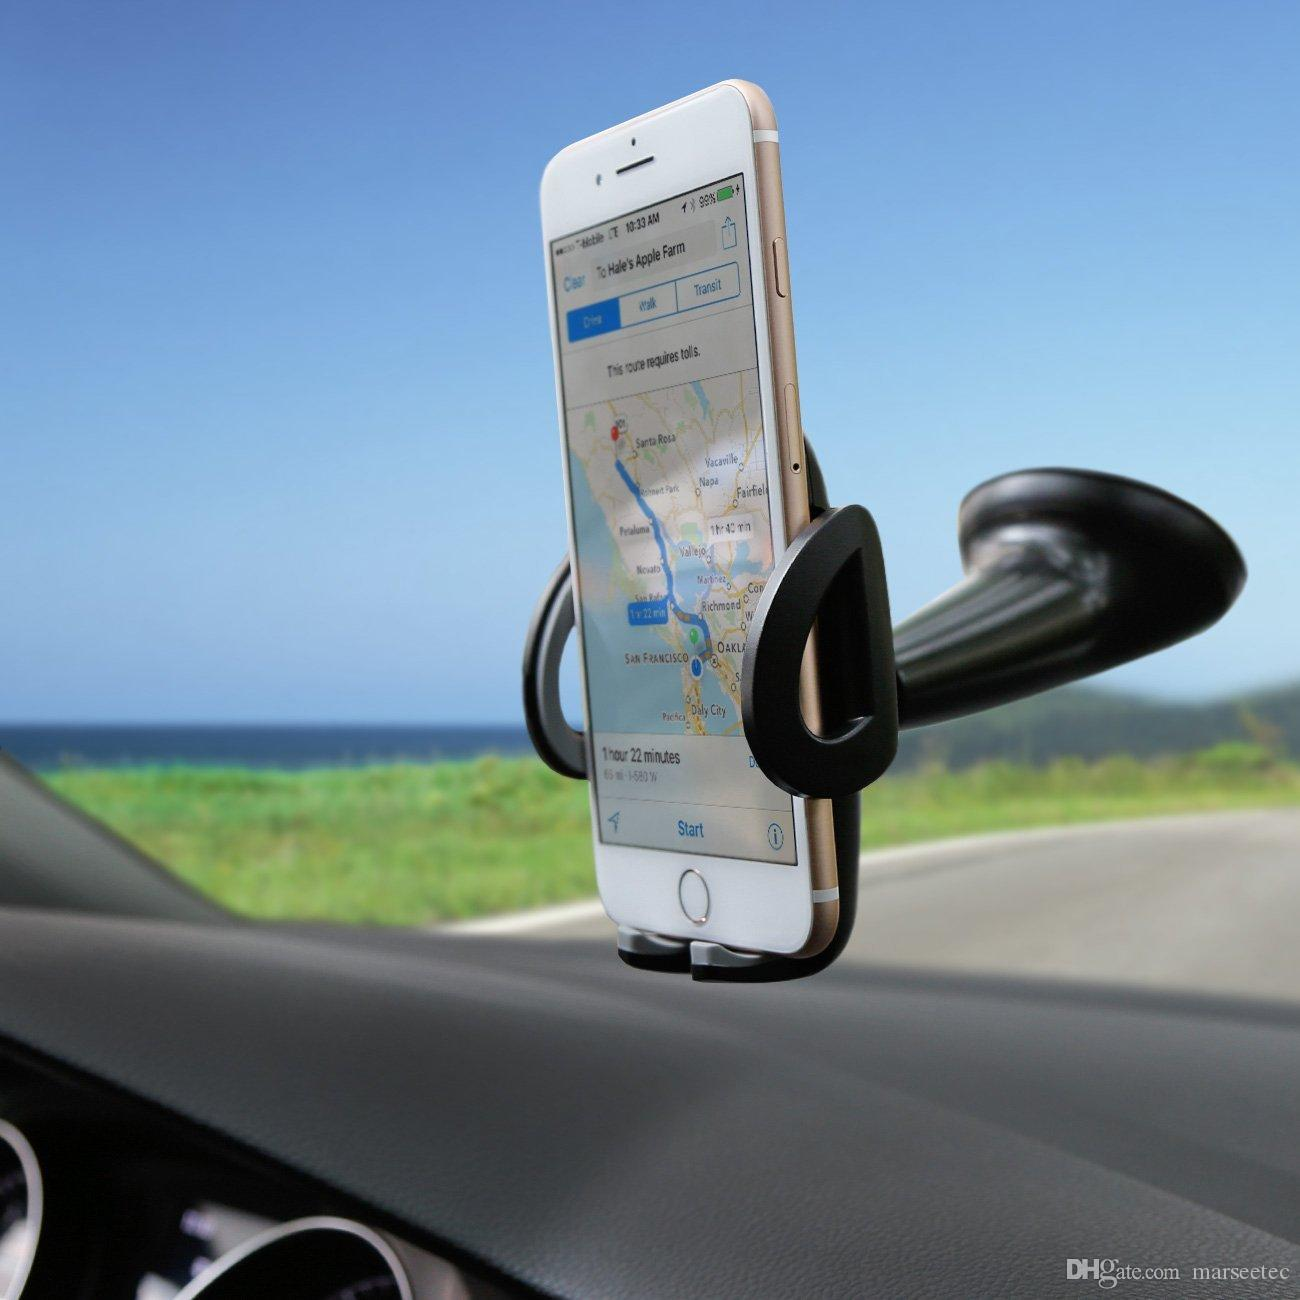 Phone car mount holder phone holder windshield cradle for iphone 7 7 plus 6 6 plus 5 samsung galaxy s5 s6 s6 edge s7 s7 edge and more best car mount holder